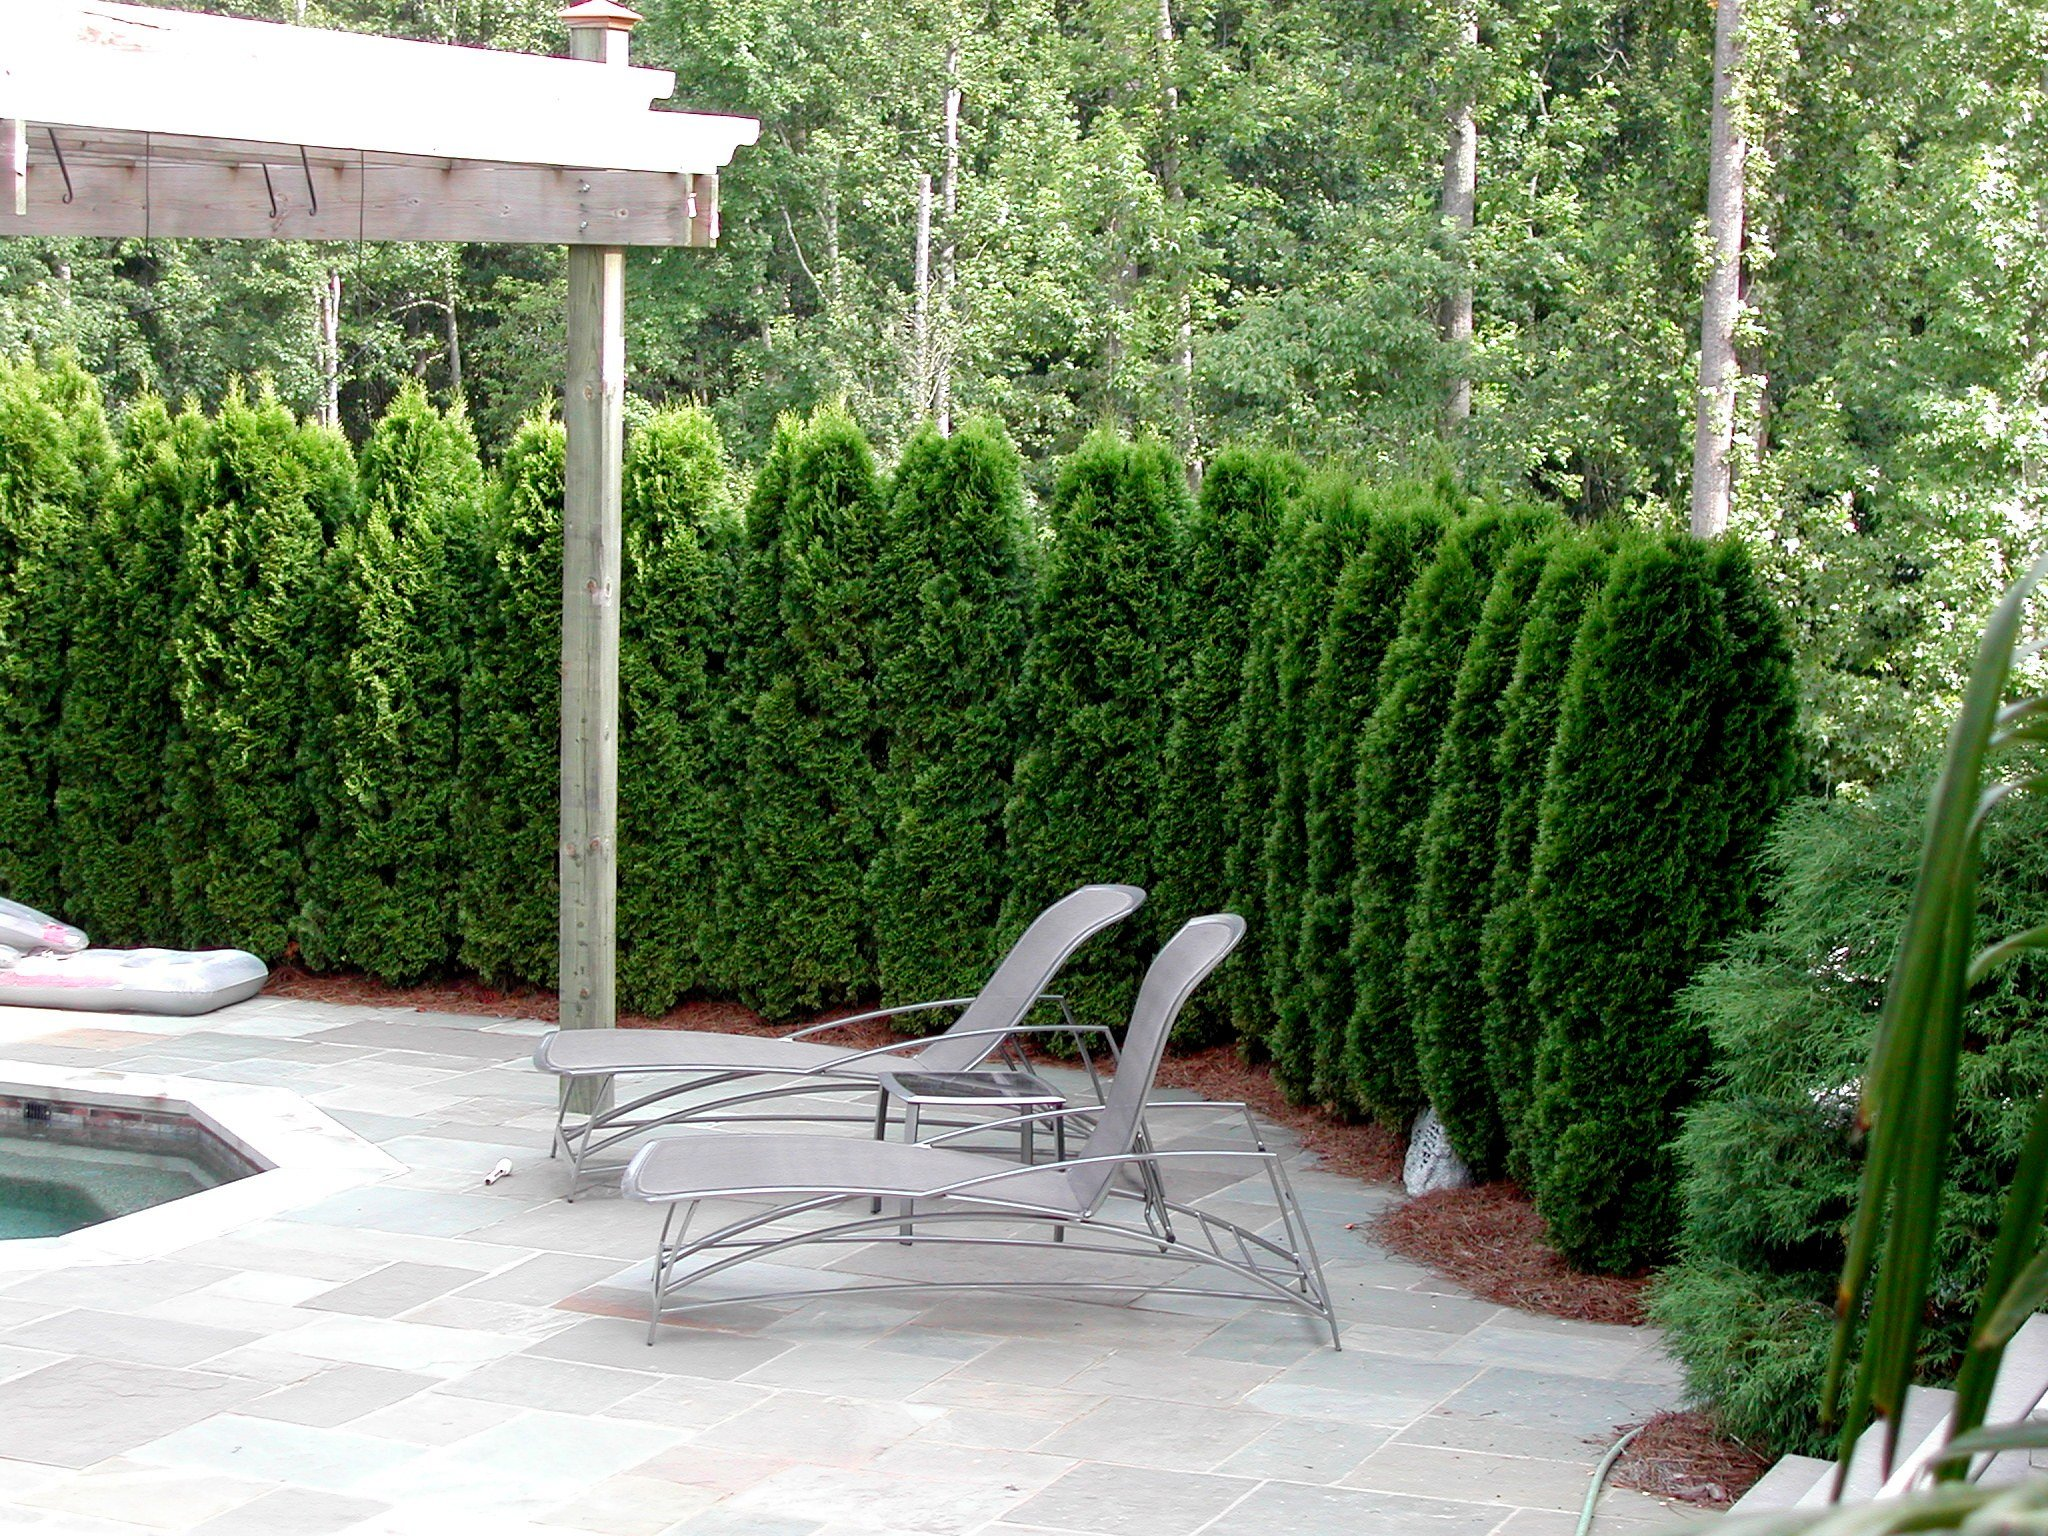 Thuja Emerald Green Arborvitae Qty 60 Live Plants Evergreen Privacy Hedge by Florida Foliage